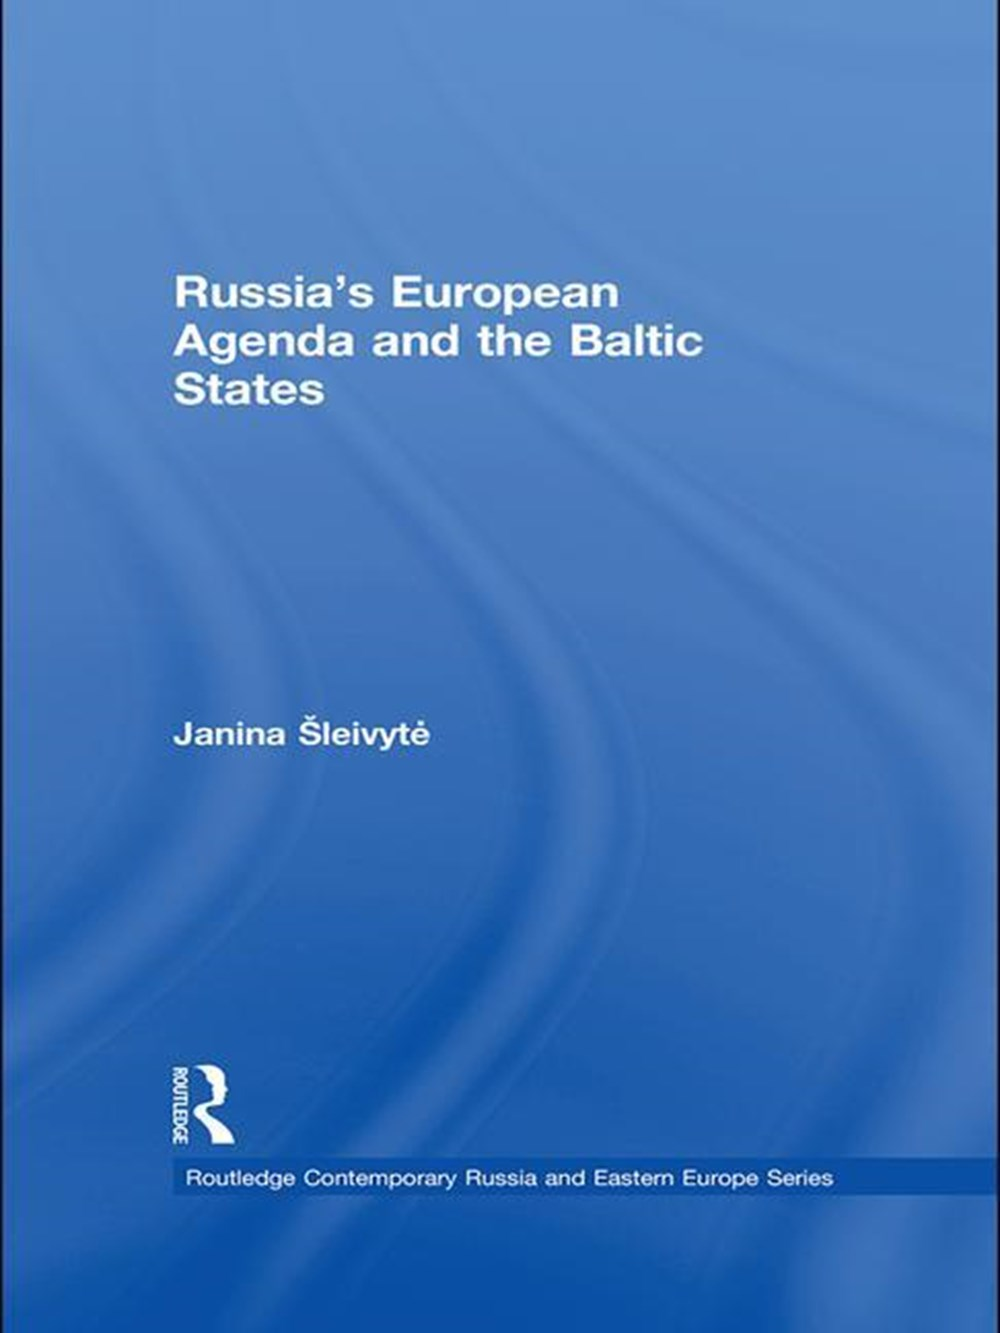 Russia's European Agenda and the Baltic States